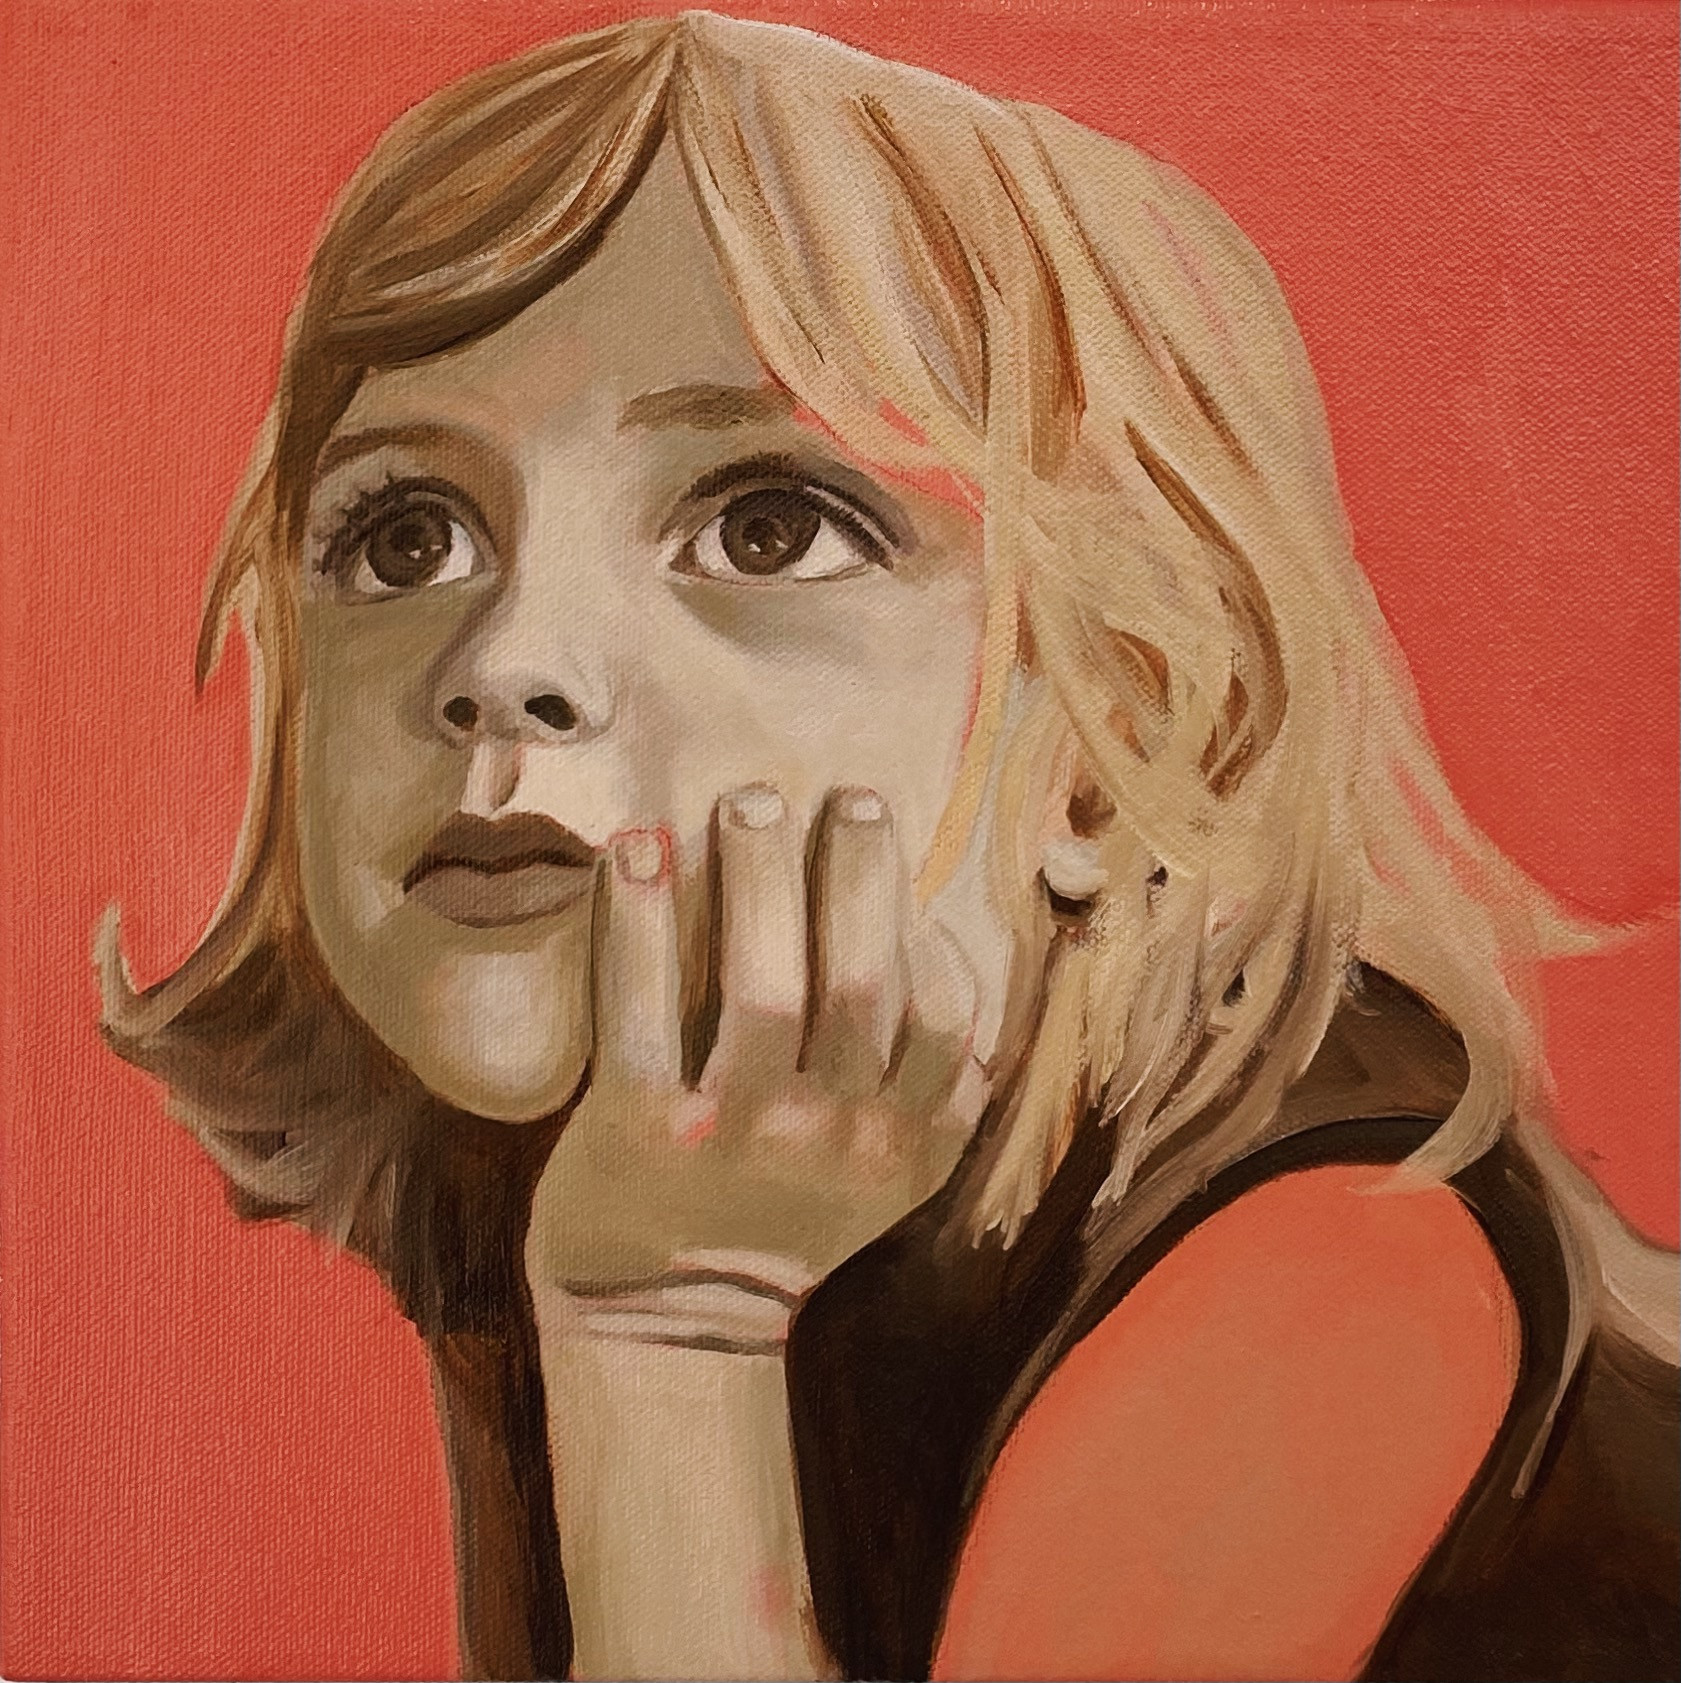 Penny for your thoughts, oil on canvas, 25 x 25 cm